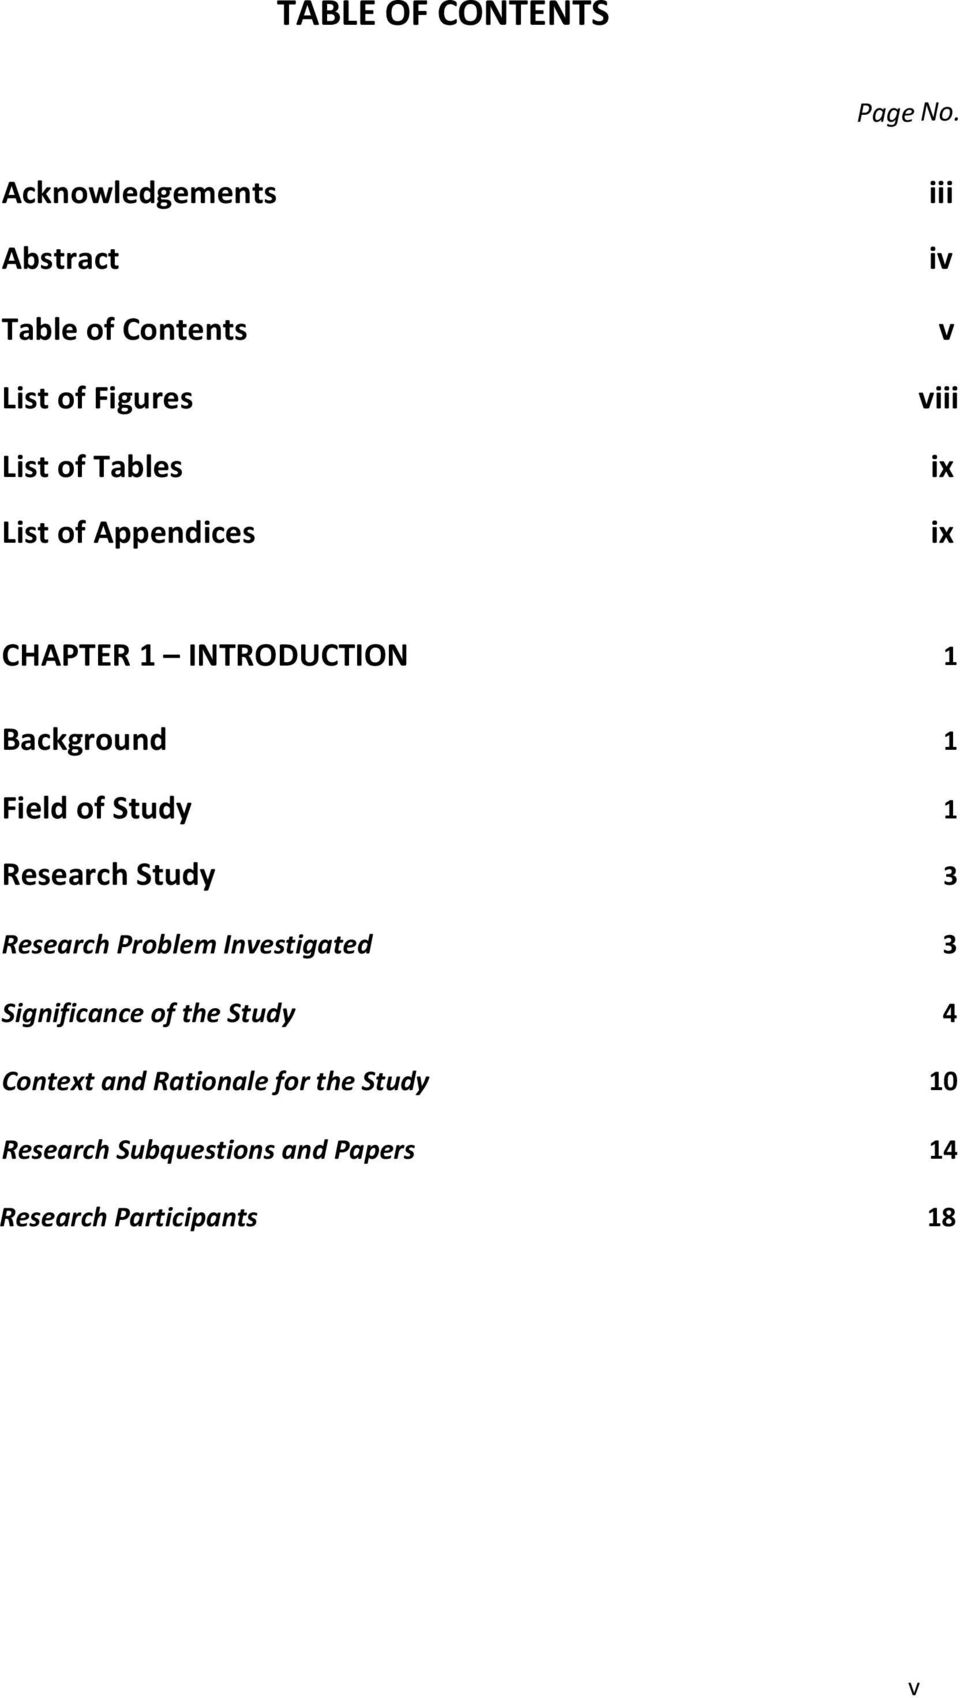 iii iv v viii ix ix CHAPTER 1 INTRODUCTION 1 Background 1 Field of Study 1 Research Study 3